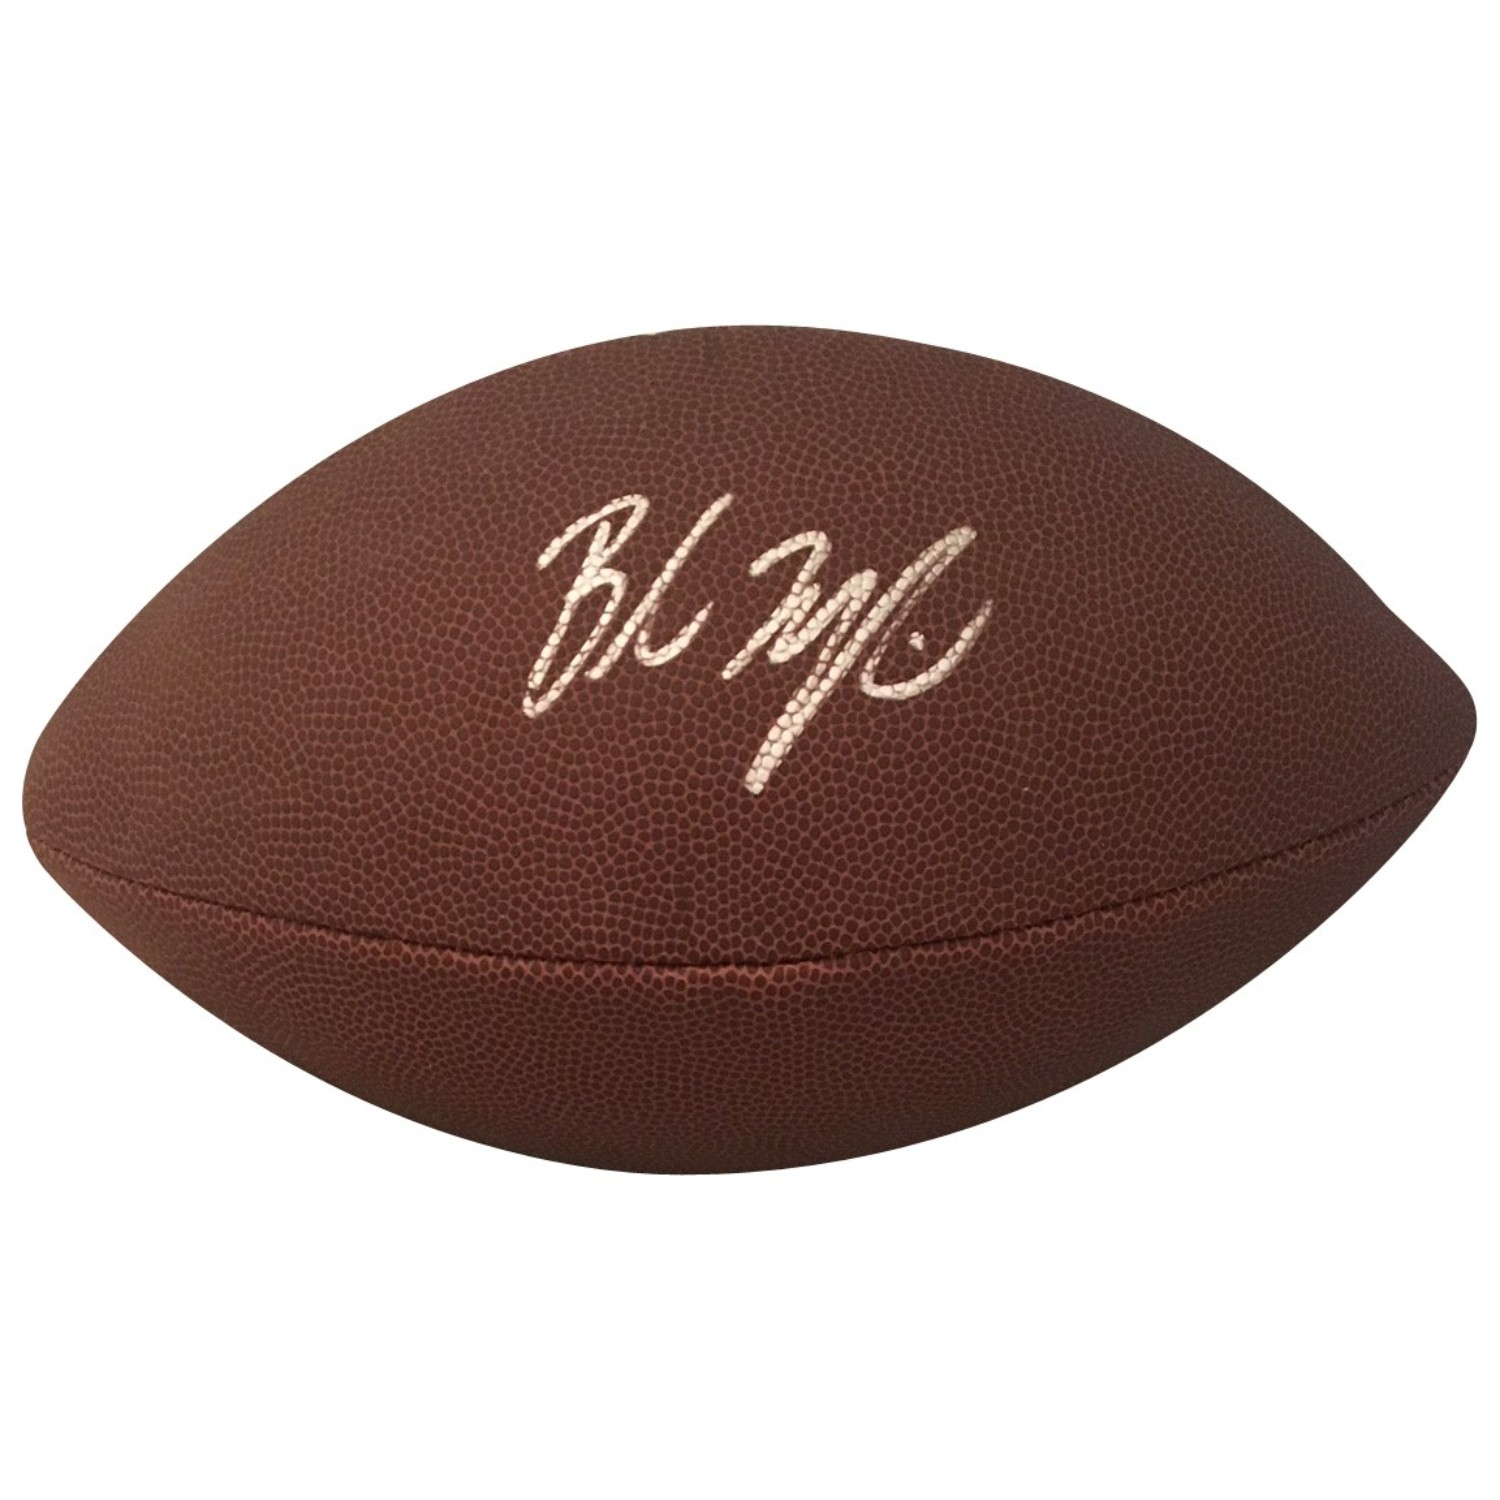 Baker Mayfield Cleveland Browns Oklahoma Sooners Autographed NFL Signed  Football PSA DNA COA 760ffc612